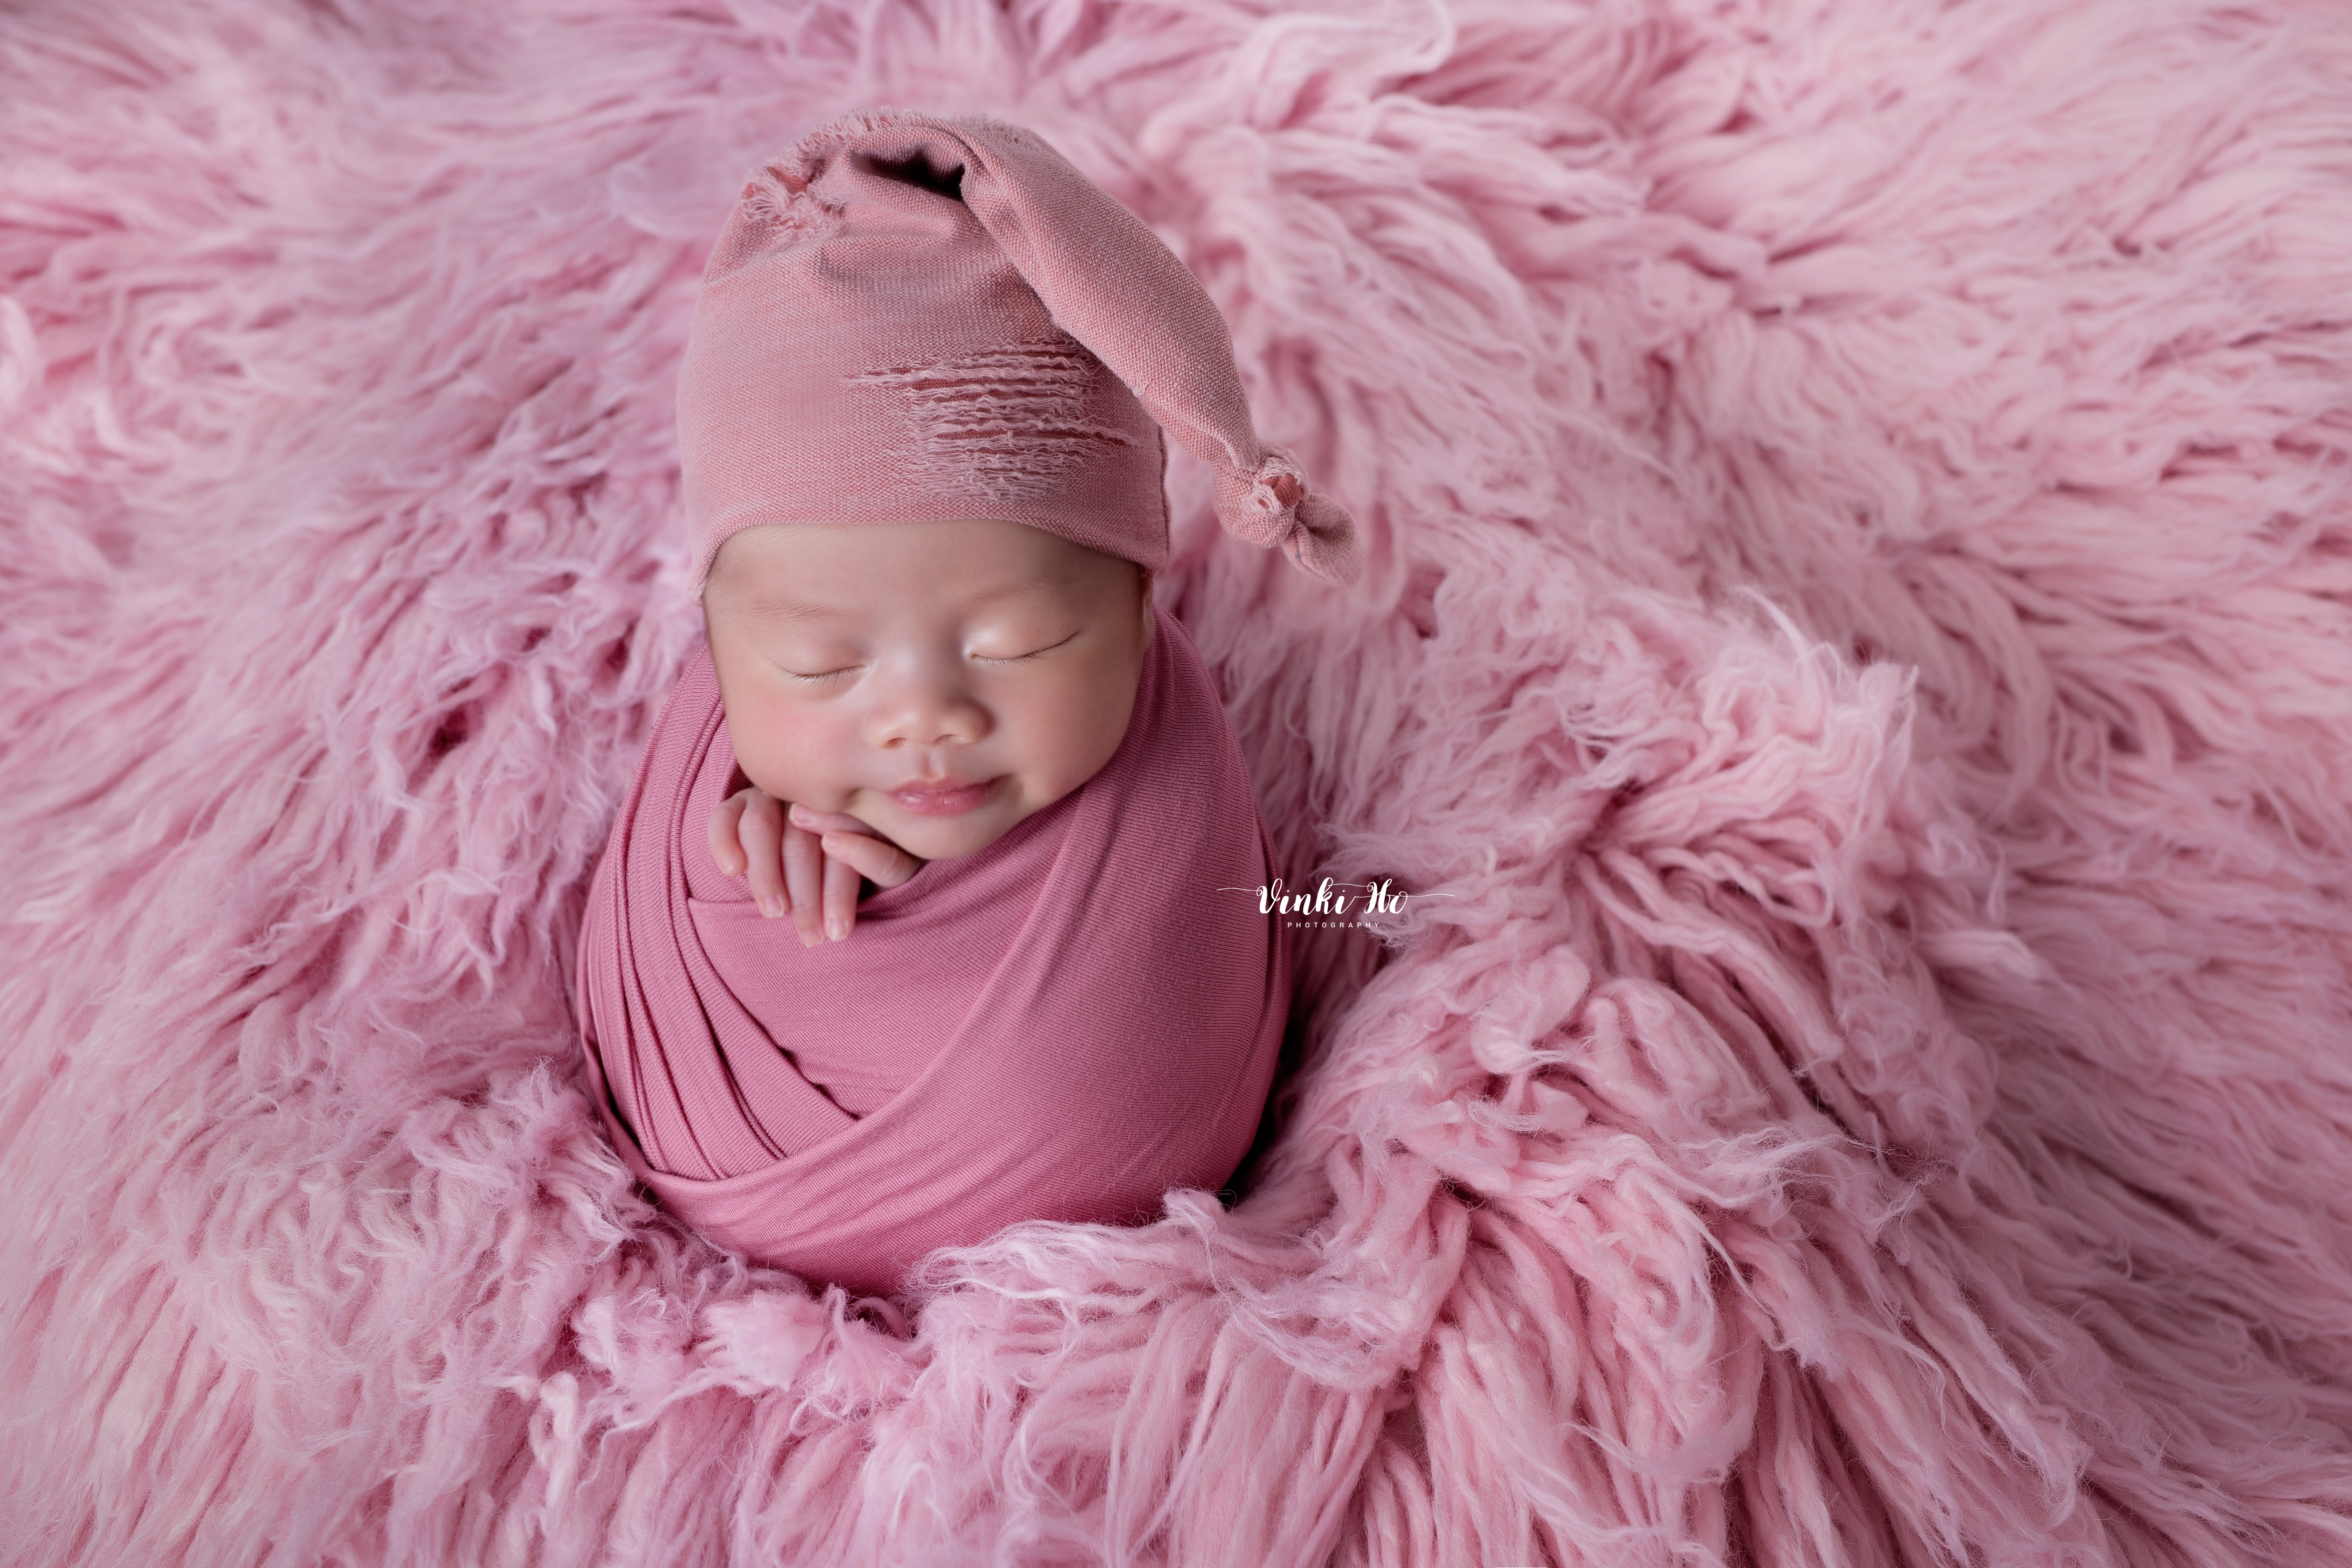 Baby Danelle ~ 17days old